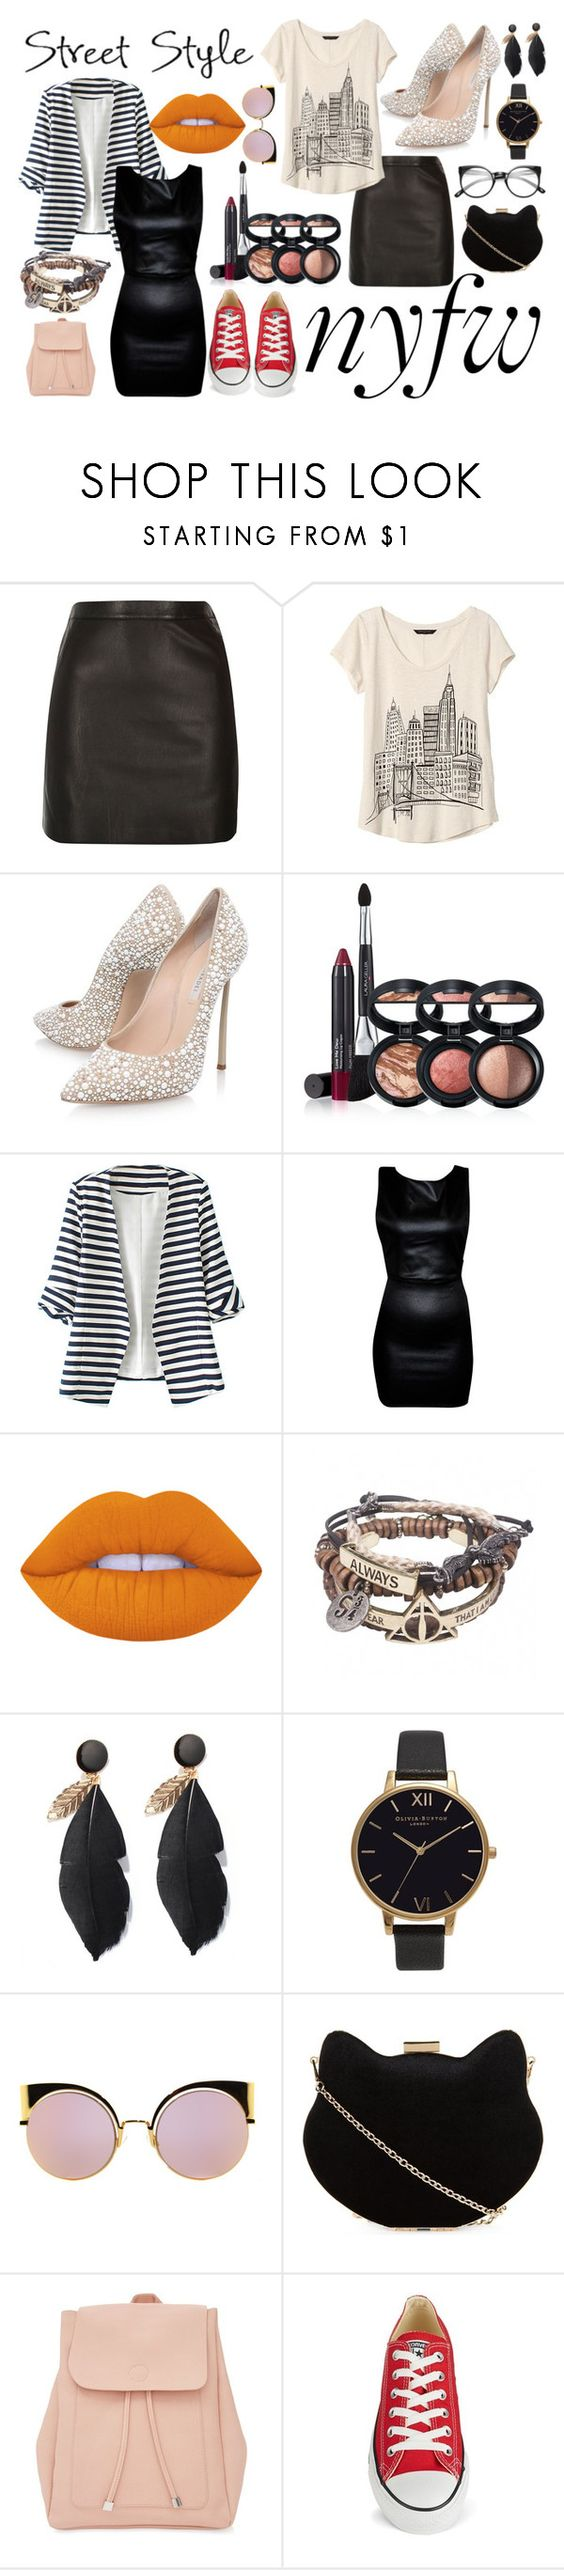 """""""Street Style"""" by minekun ❤ liked on Polyvore featuring River Island, Banana Republic, Casadei, Laura Geller, WithChic, Untitled & Co, Lime Crime, Olivia Burton, Fendi and New Look"""